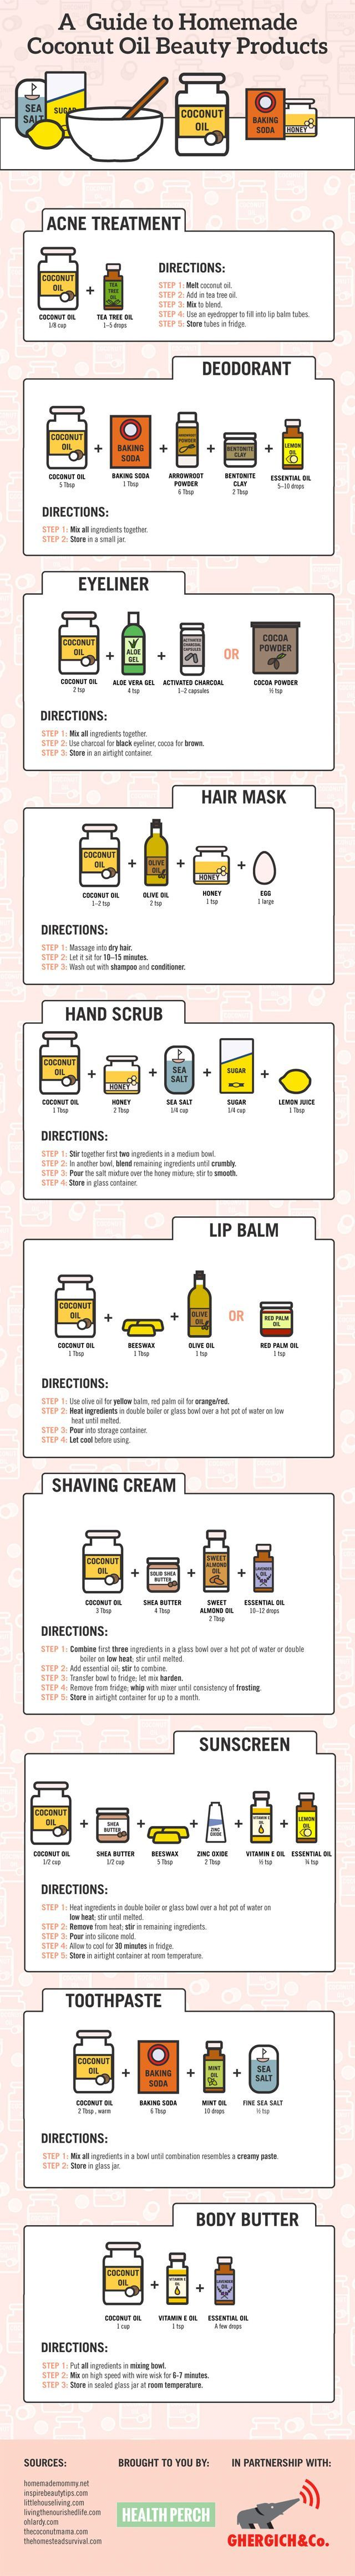 Natural homemade beauty recipes